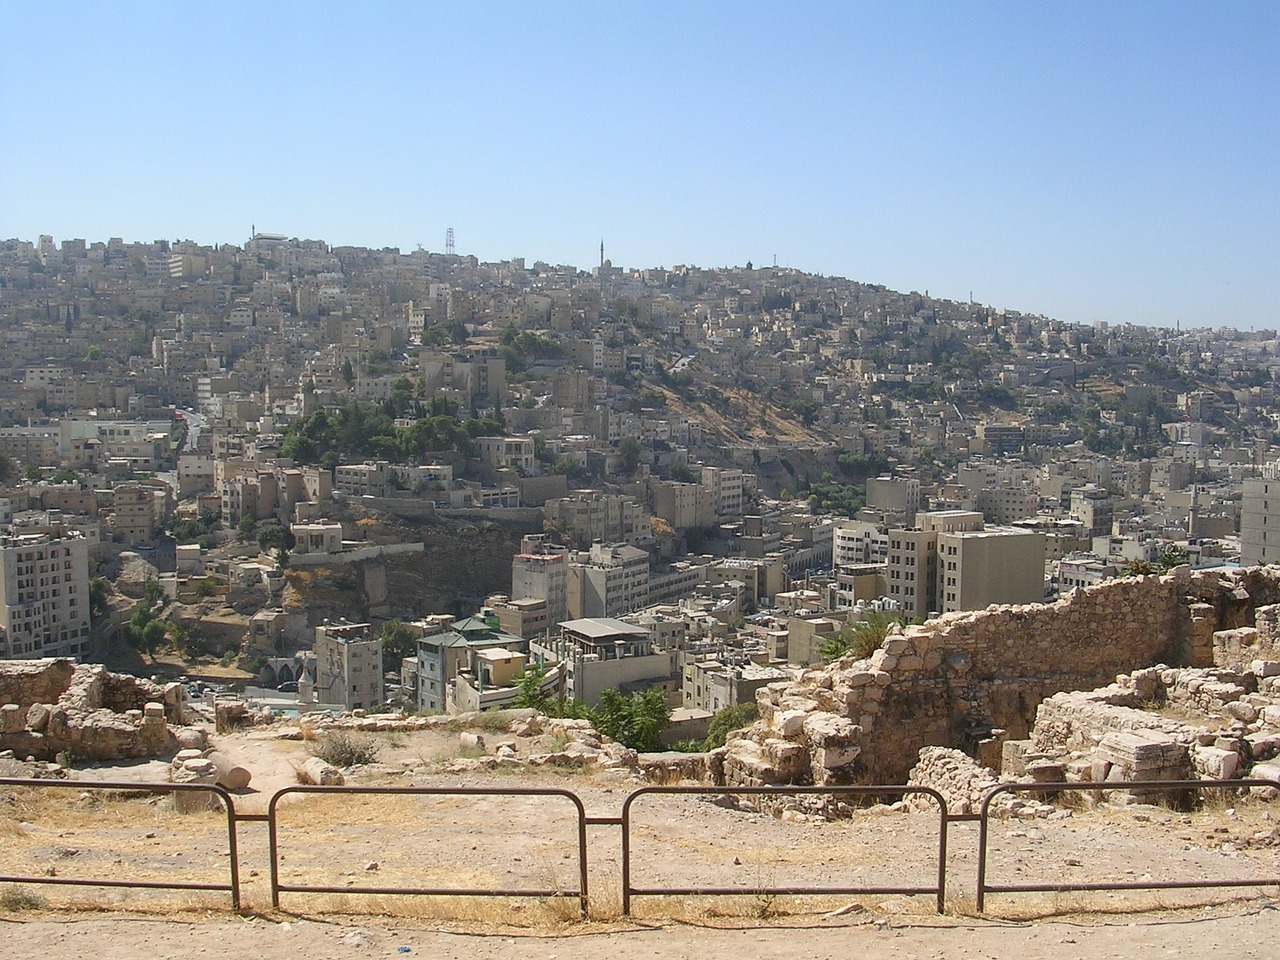 View from the Citadel Hill in Amman